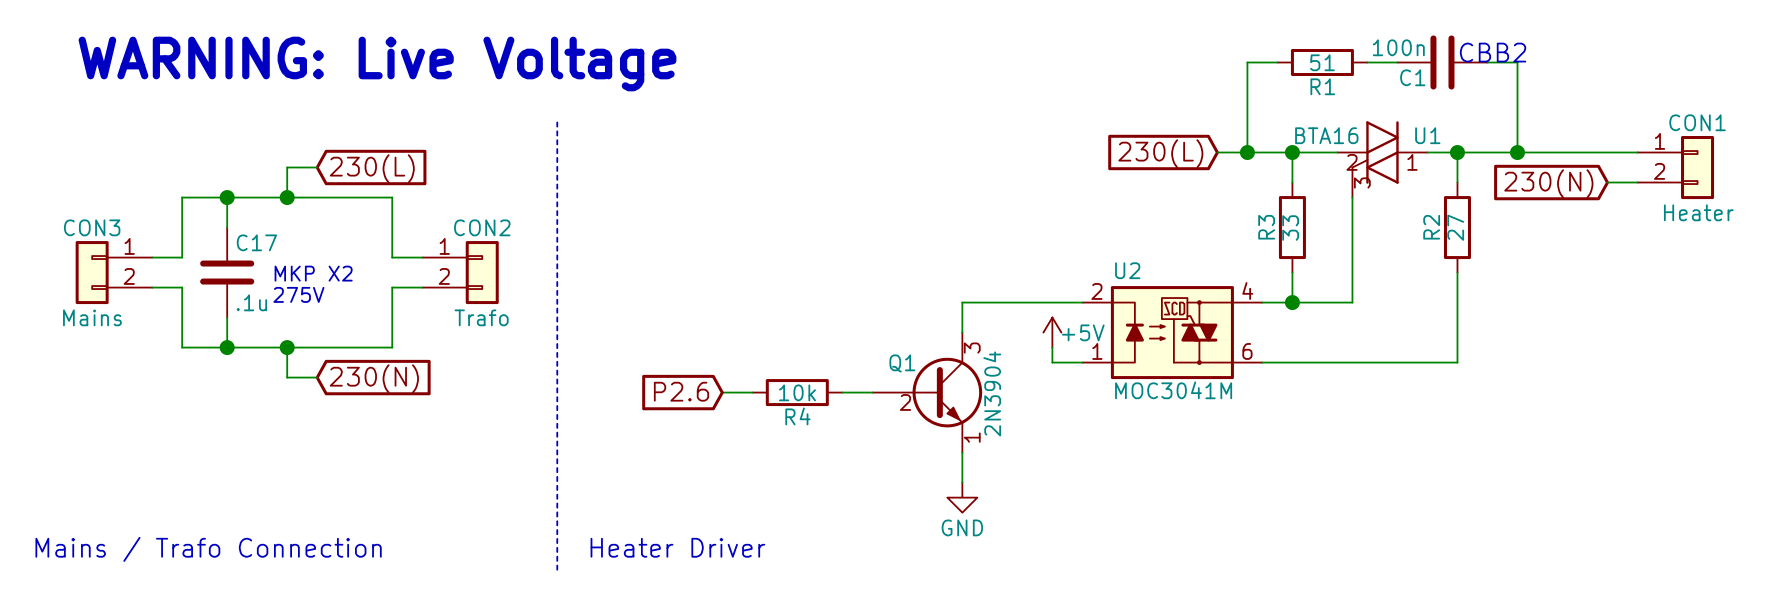 hight resolution of mains connection and heater driver